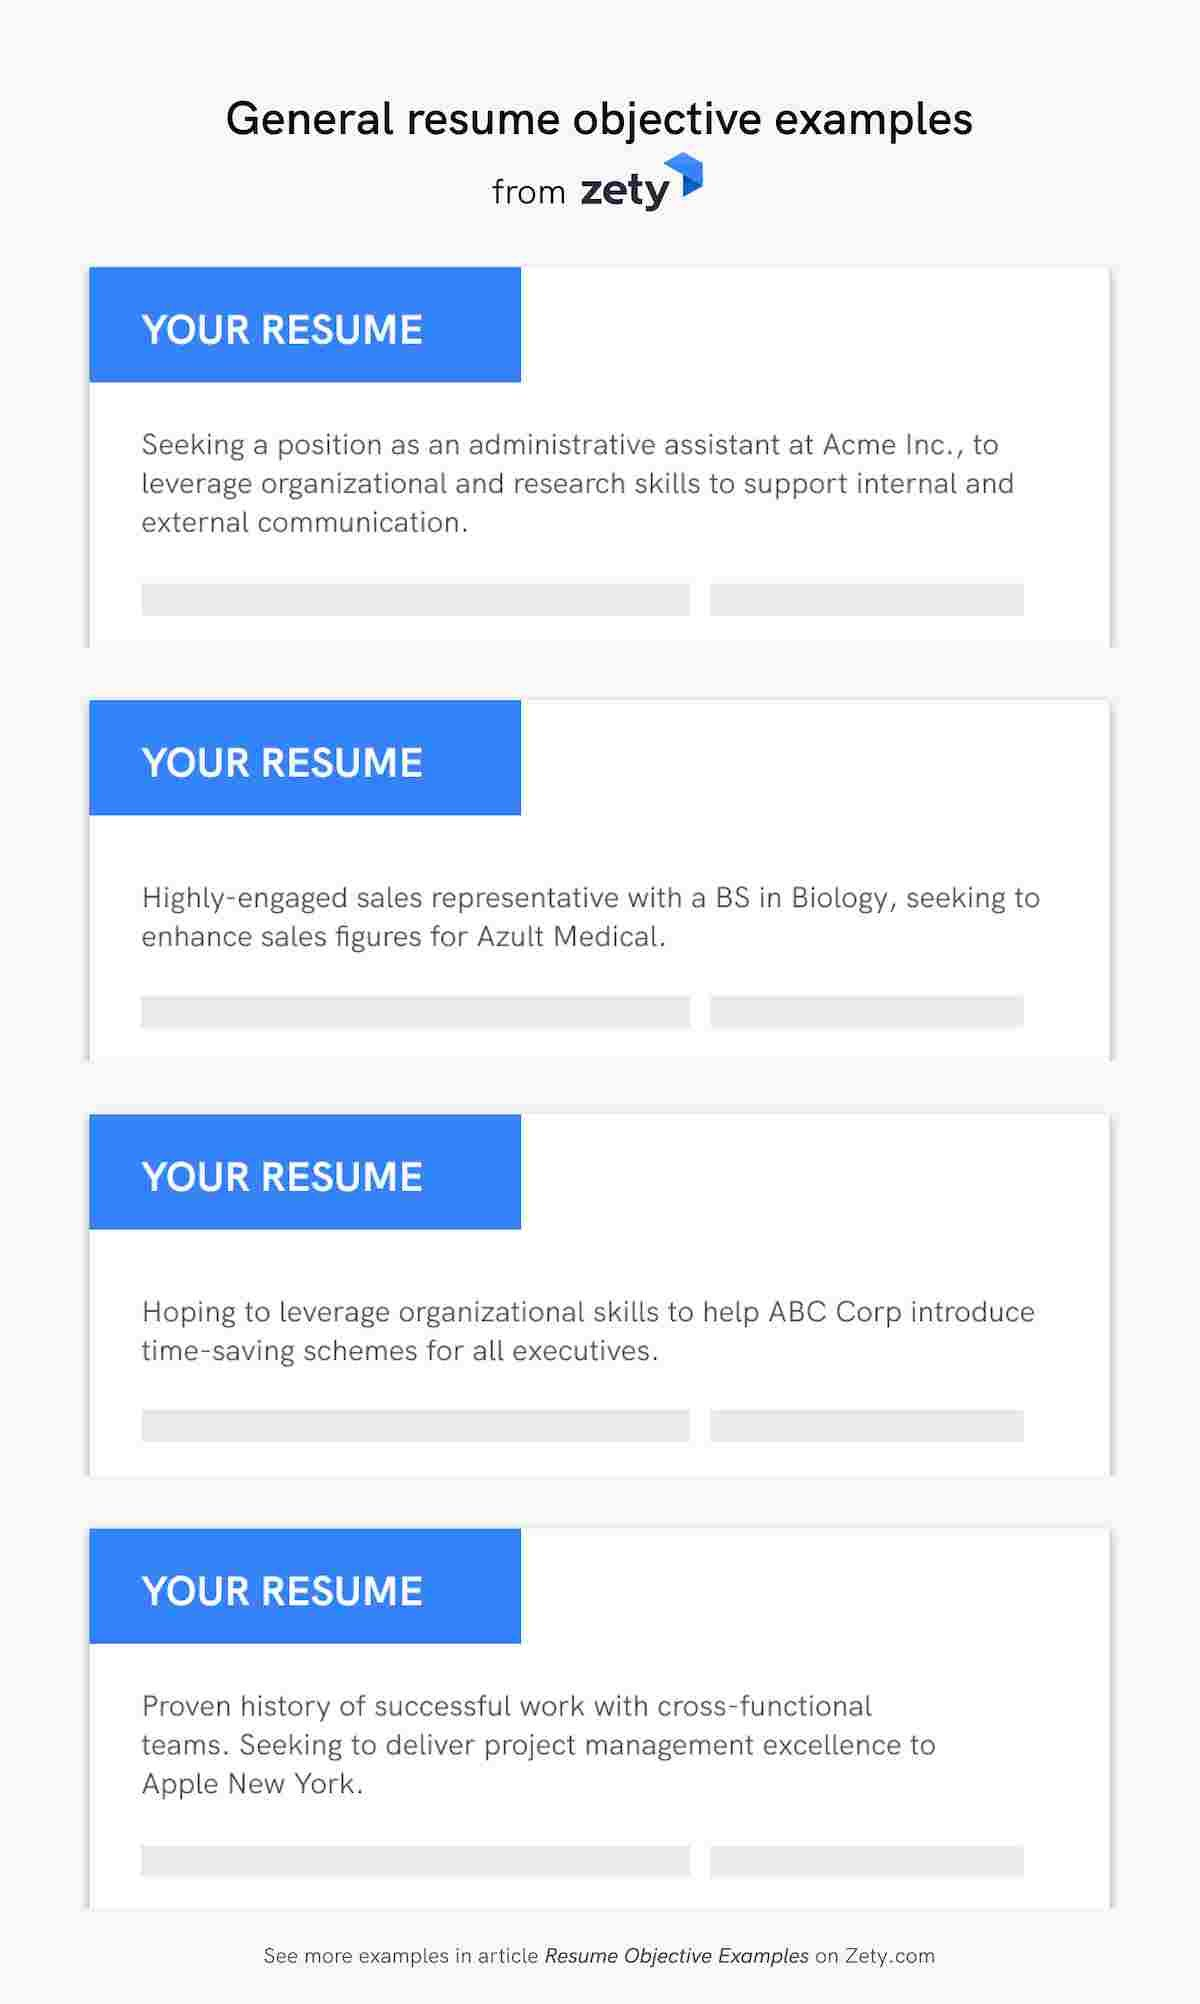 resume objective examples career objectives for all jobs professional general deloitte Resume Professional Resume Objective Examples